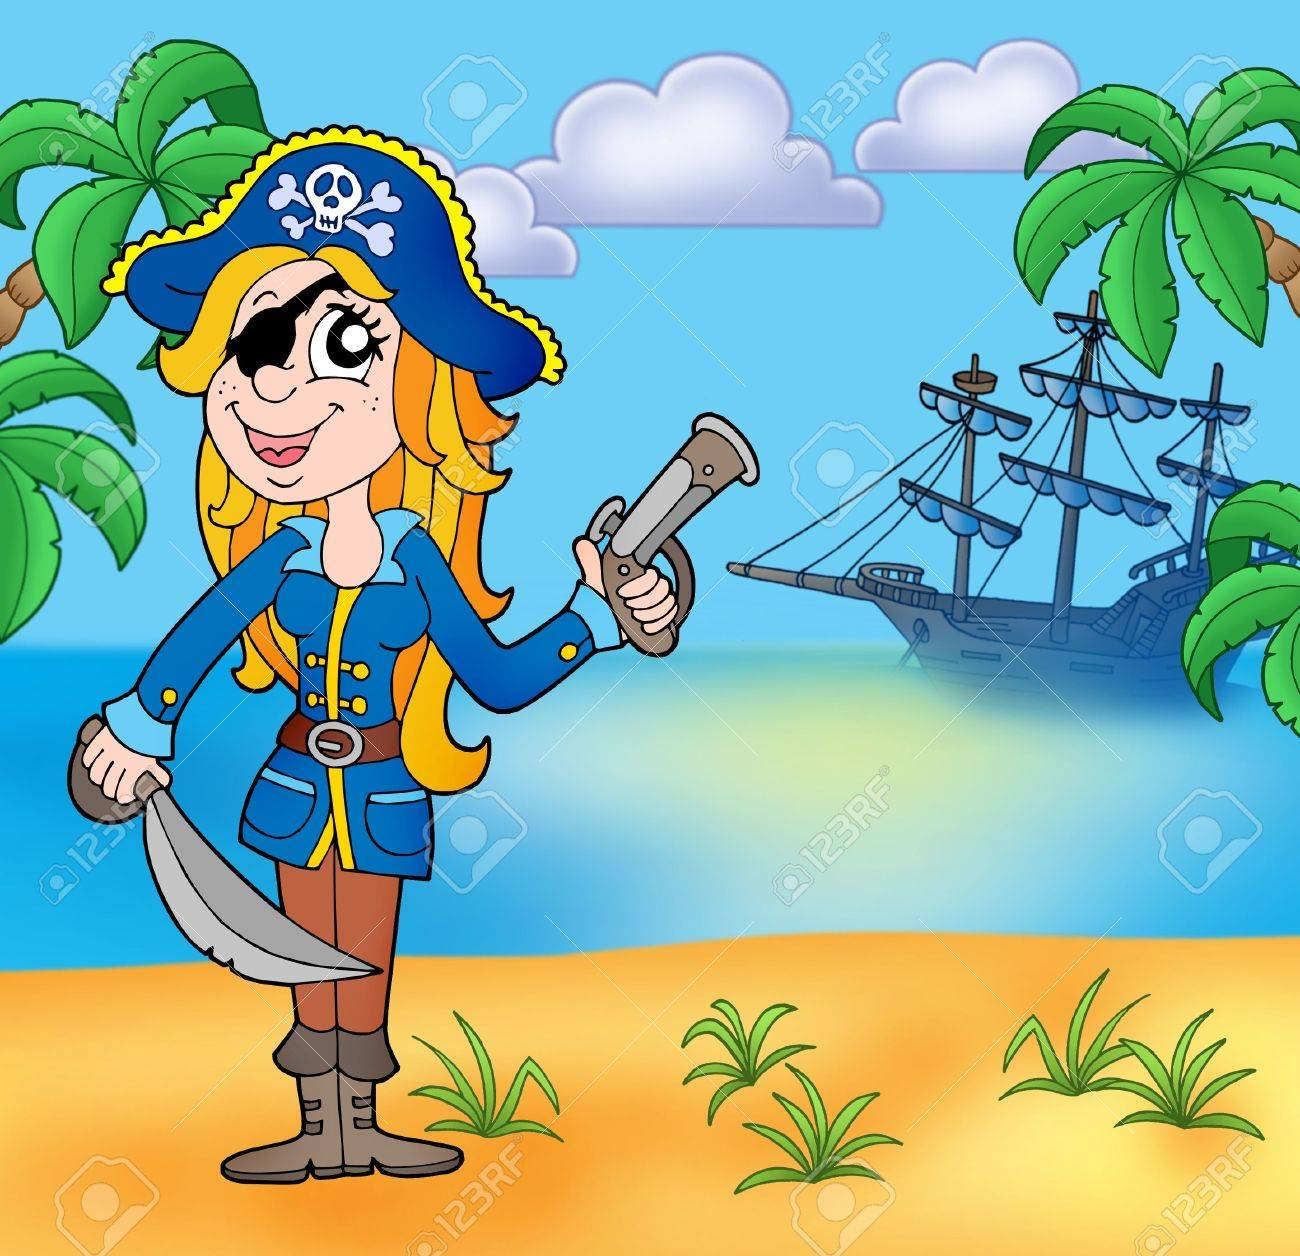 Pirate girl on beach 3 - color illustration. Stock Photo - 5741612